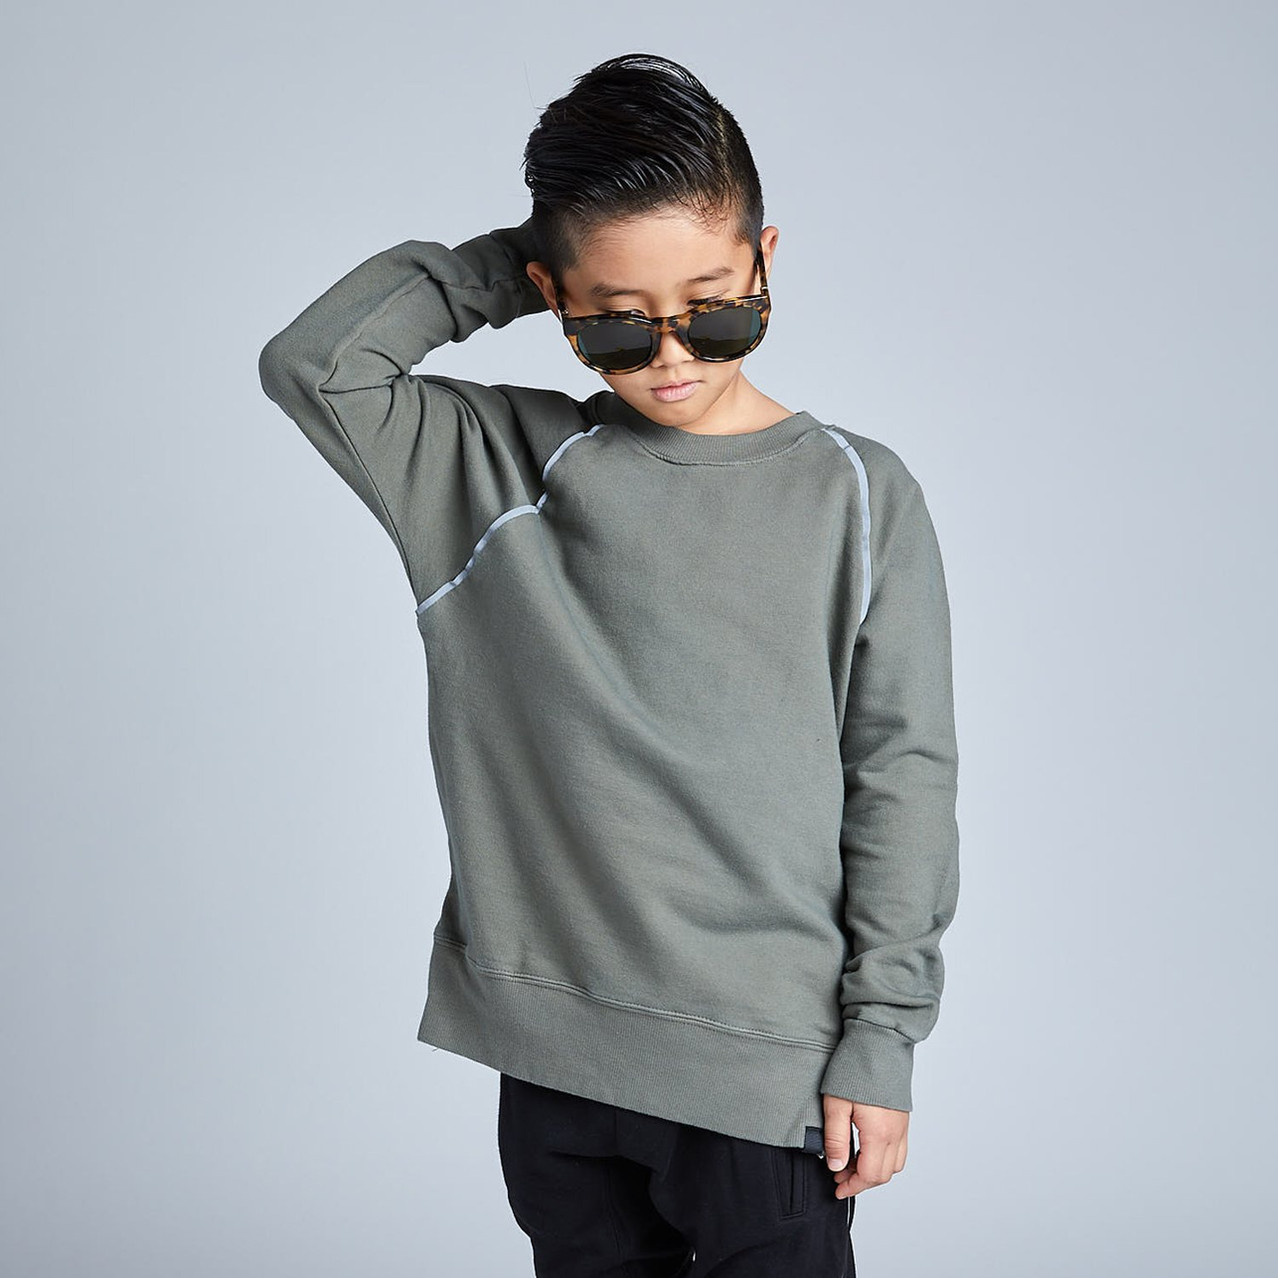 greensweatshirt_lookbook_1500x1500_9c4f7